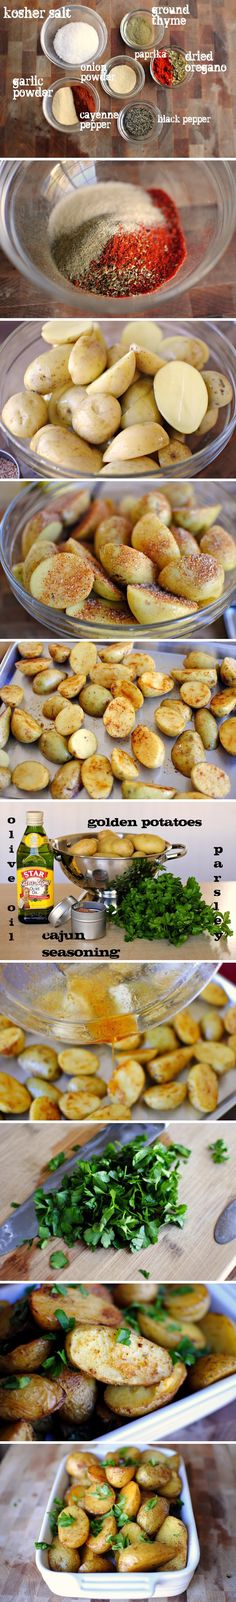 Cajun Spiced Potatoes - so delicious, perfect side for any main dish! minus the thyme